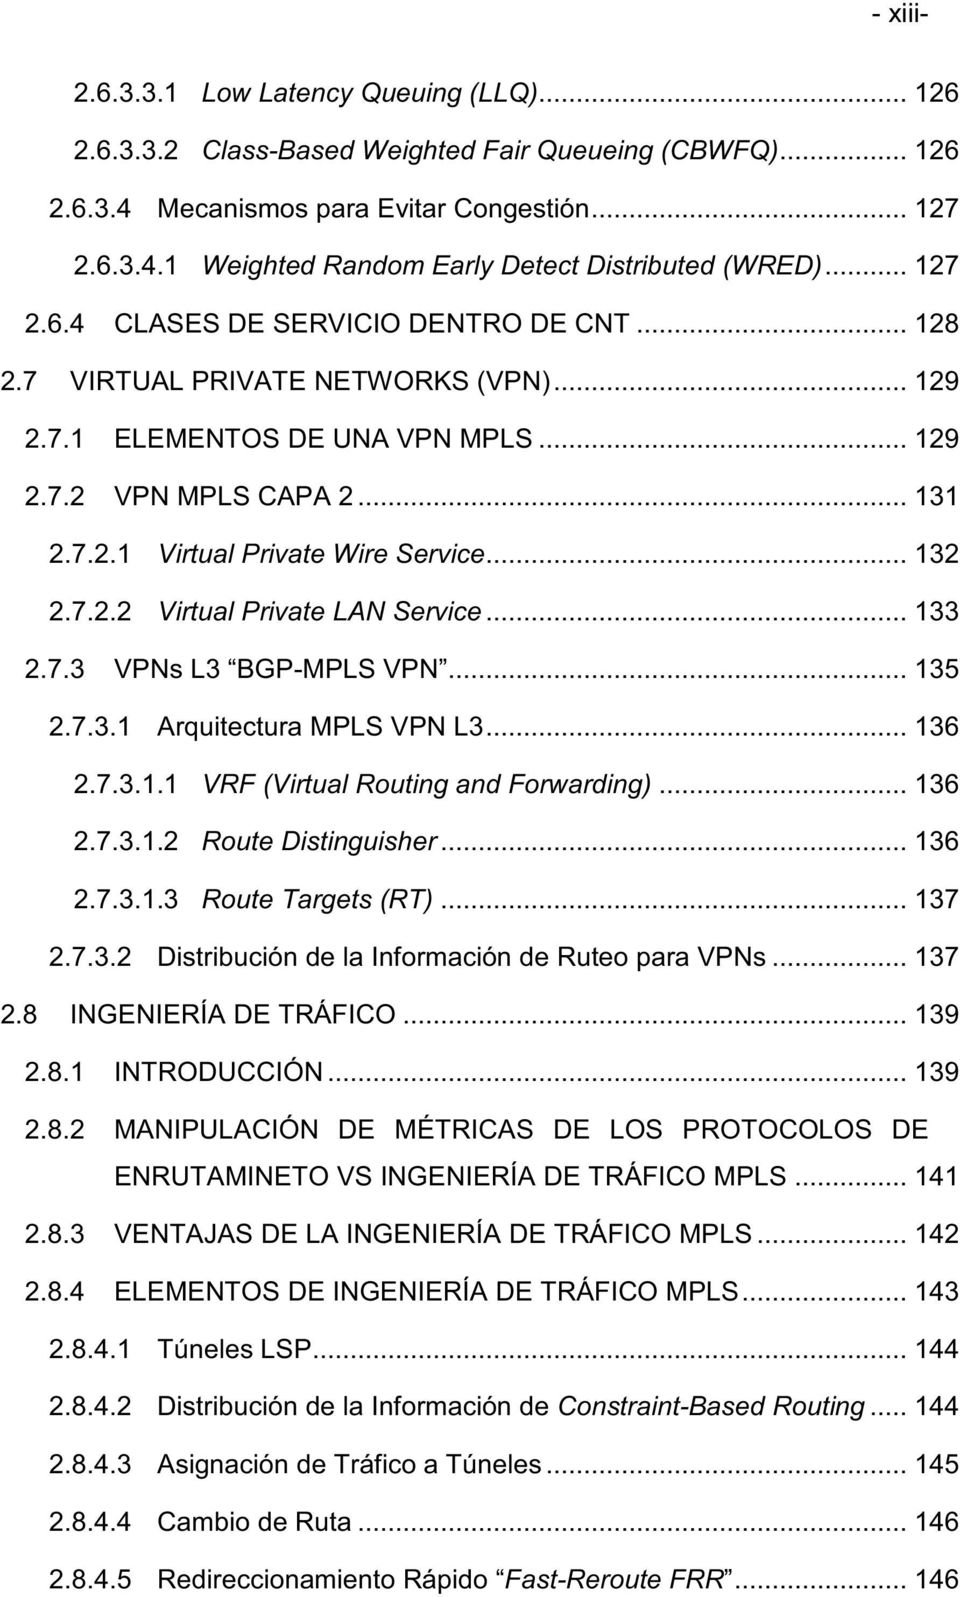 .. 132 2.7.2.2 Virtual Private LAN Service... 133 2.7.3 VPNs L3 BGP-MPLS VPN... 135 2.7.3.1 Arquitectura MPLS VPN L3... 136 2.7.3.1.1 VRF (Virtual Routing and Forwarding)... 136 2.7.3.1.2 Route Distinguisher.